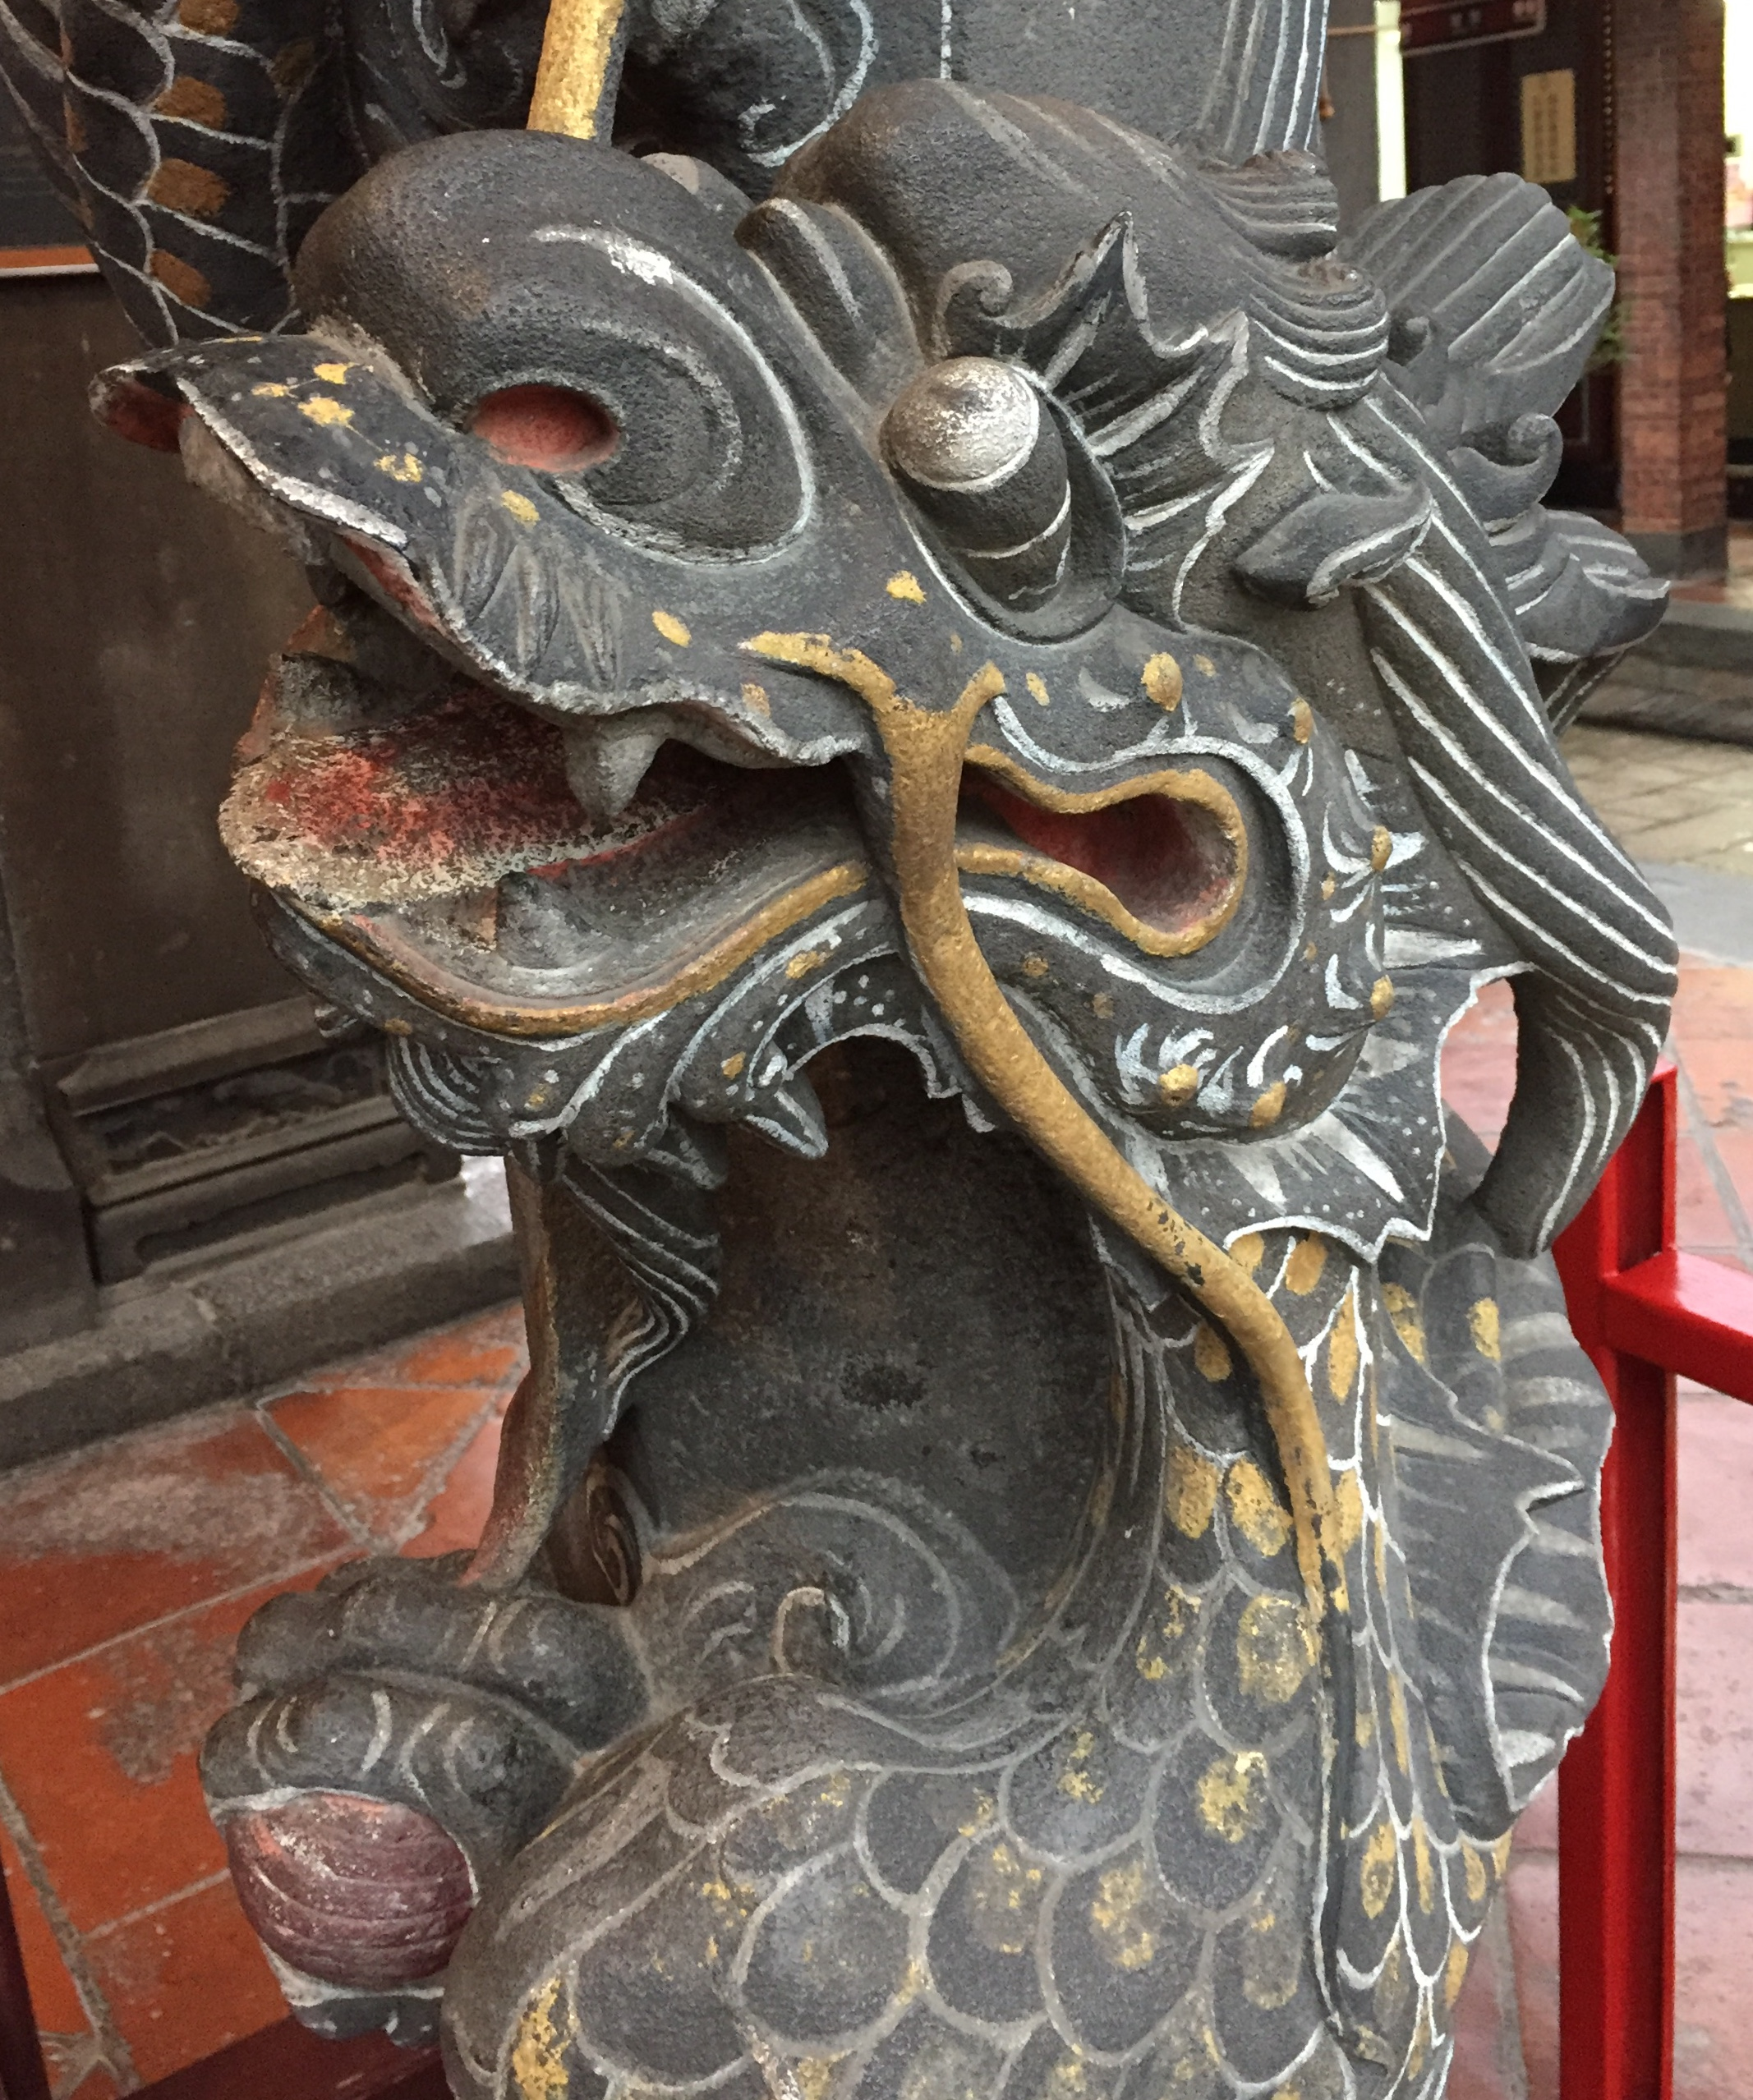 The dragon signifies strength, power and good luck.